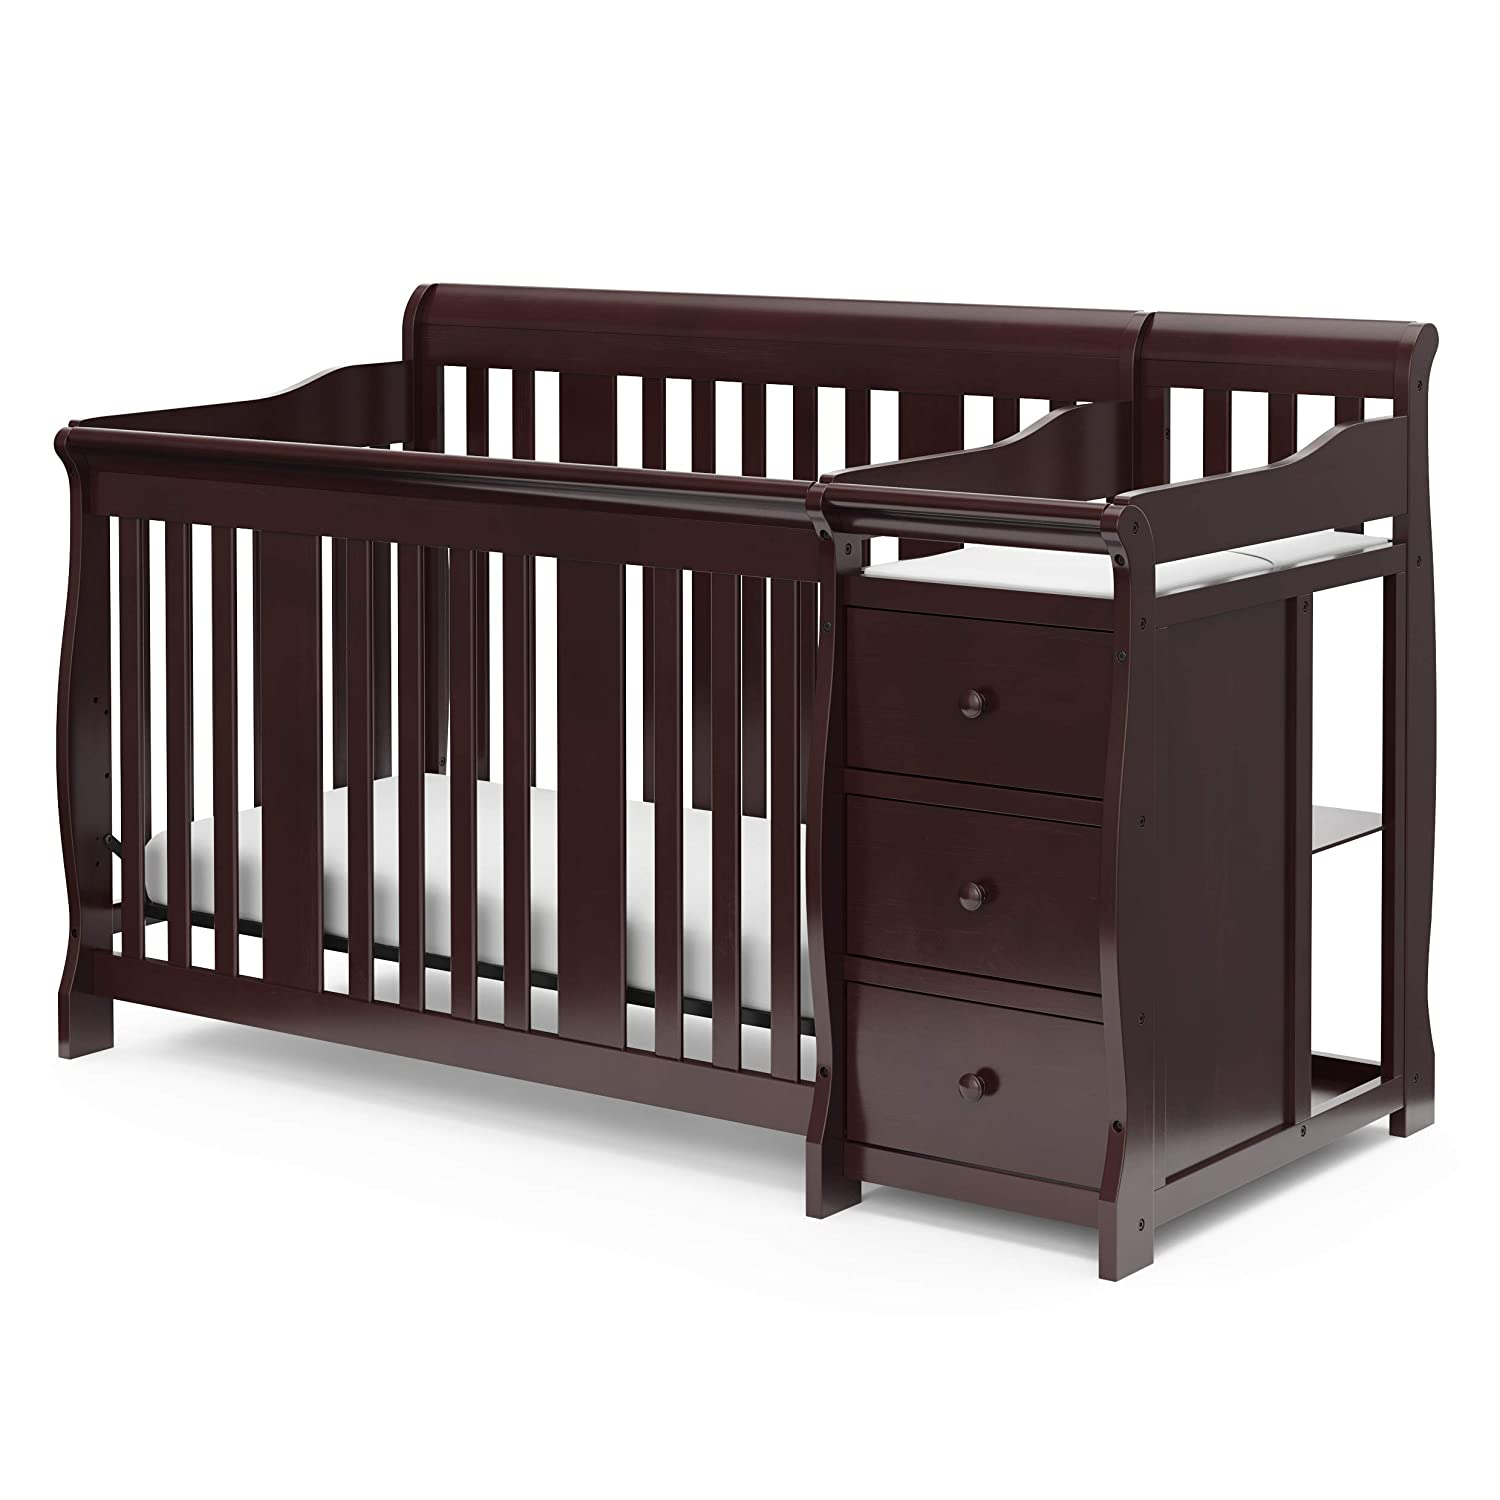 Storkcraft Portofino Fixed 4-in-1 Convertible Baby Cribs With Changing Table